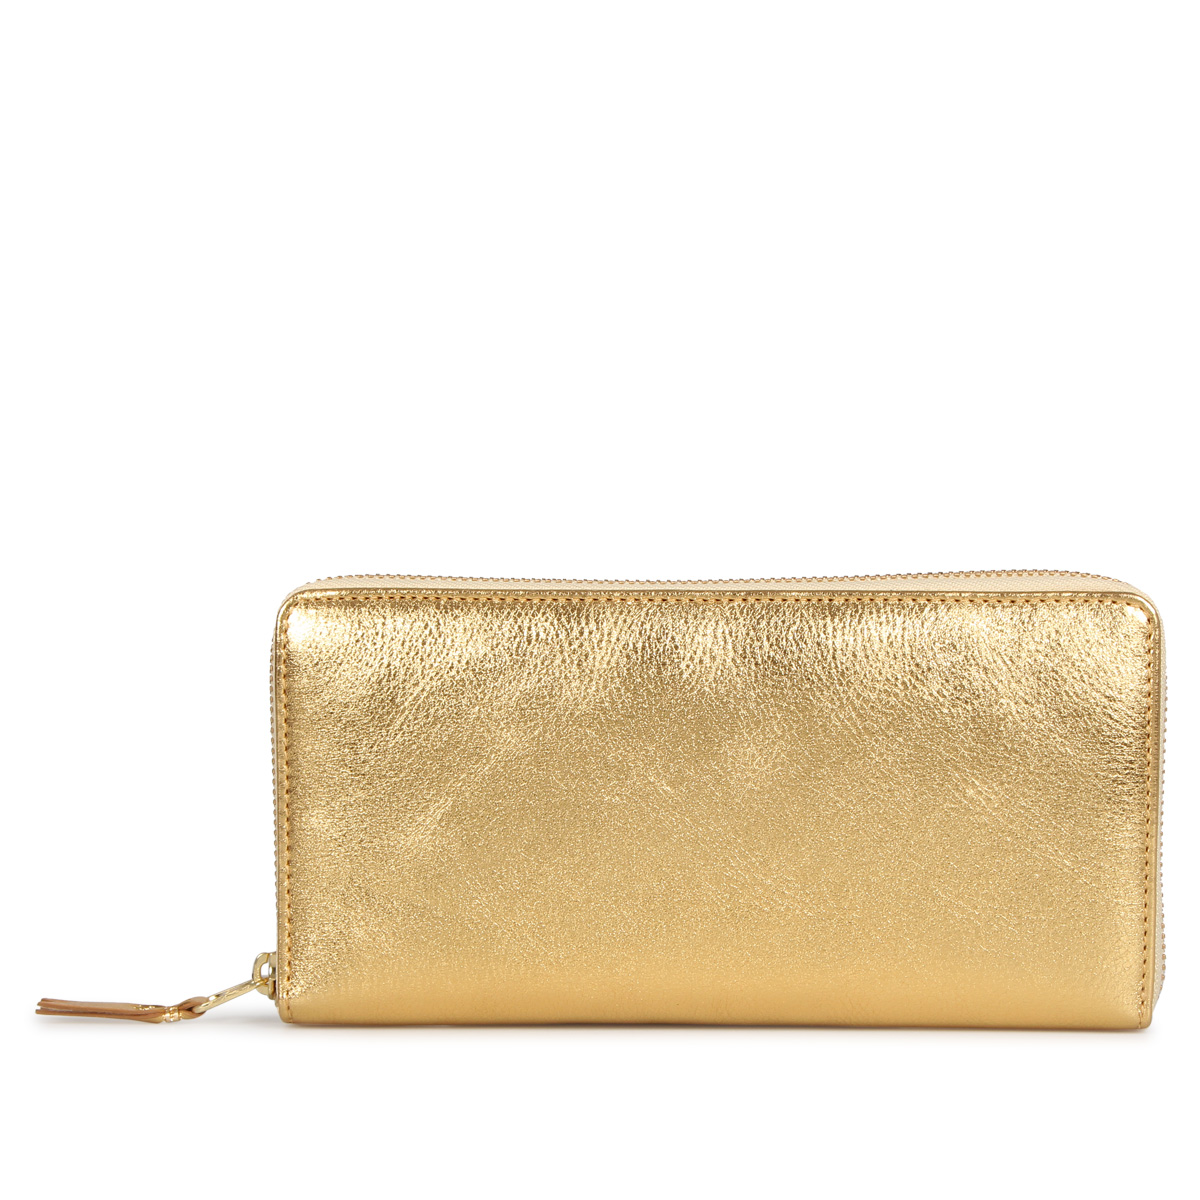 COMME des GARCONS GOLD AND SILVER WALLET コムデギャルソン 財布 長財布 メンズ レディース ラウンドファスナー 本革 ゴールド SA0110G [予約 9/9 追加入荷予定]